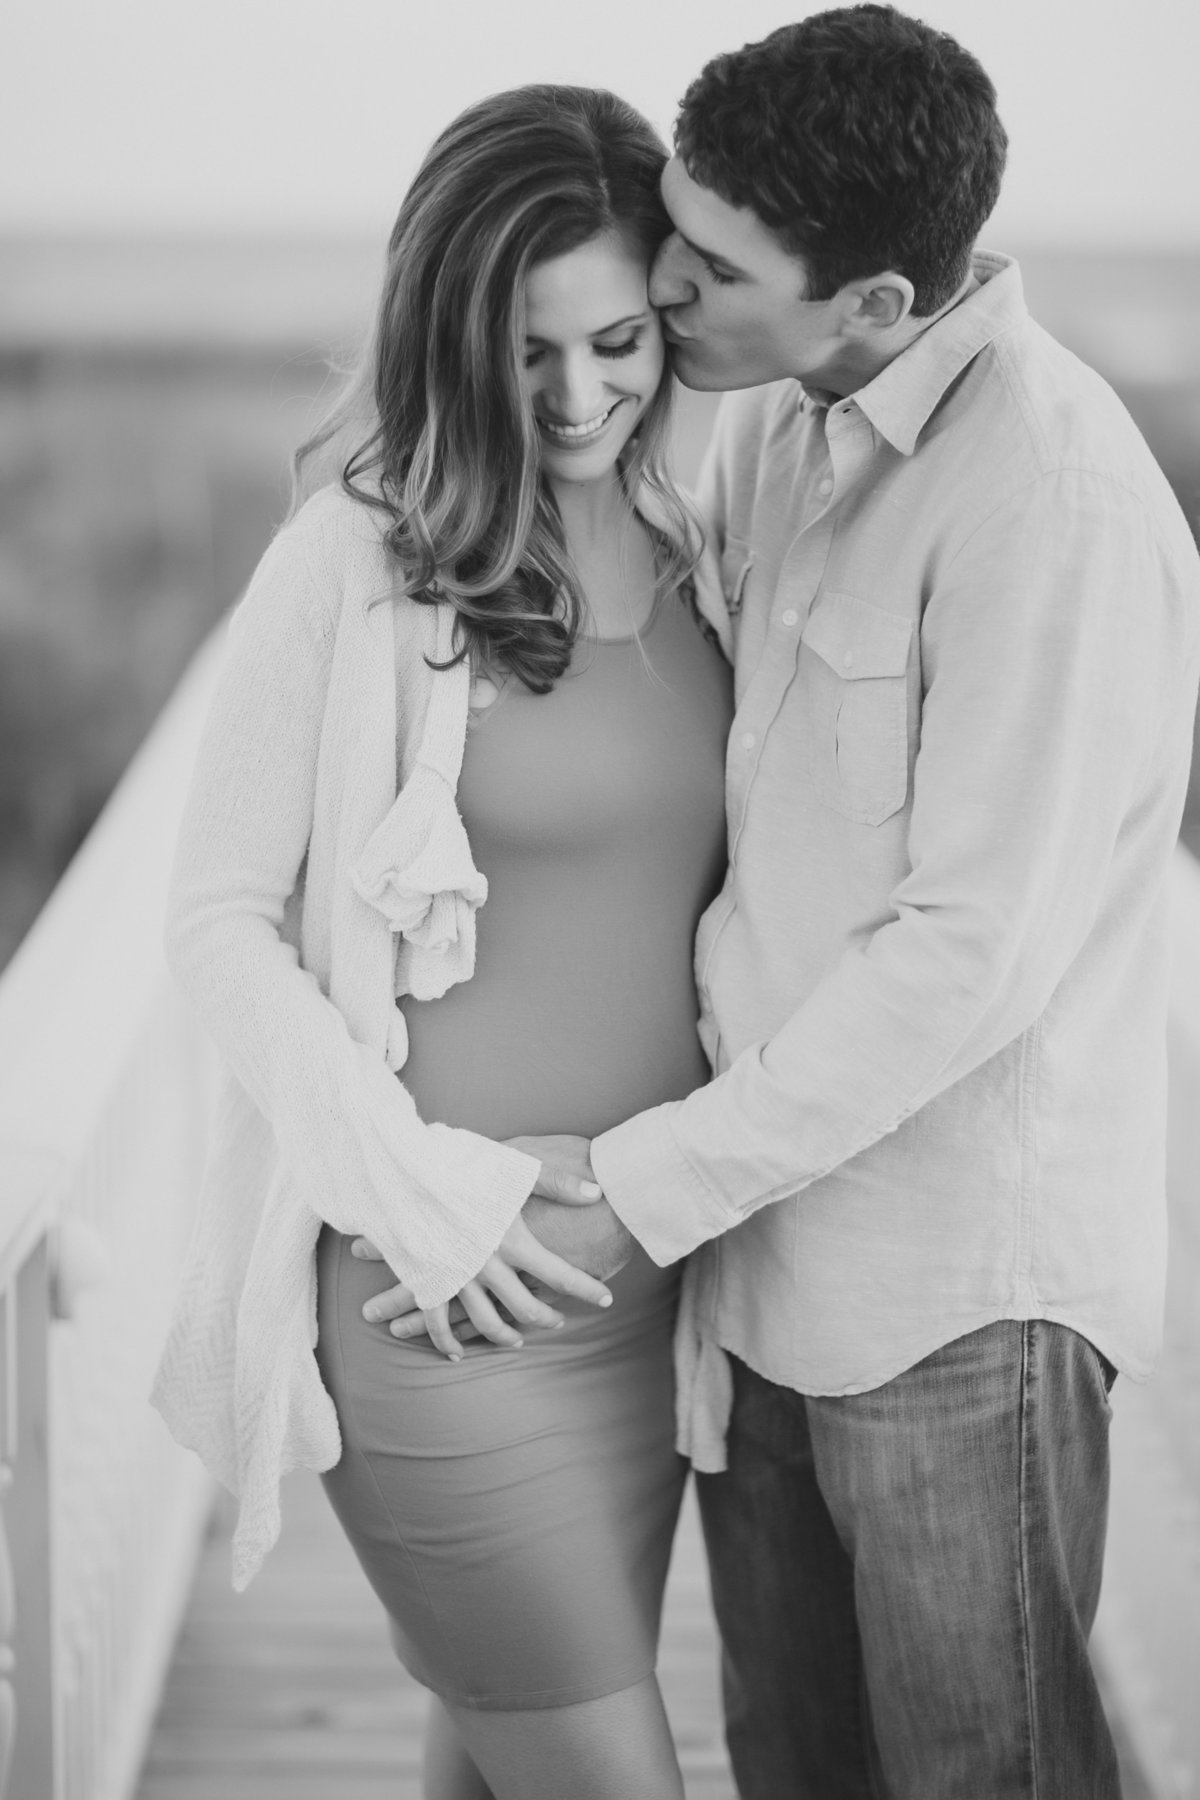 CharlestonMaternitySession_DestinationPortraitPhotography_CatherineRhodesPhotography-6